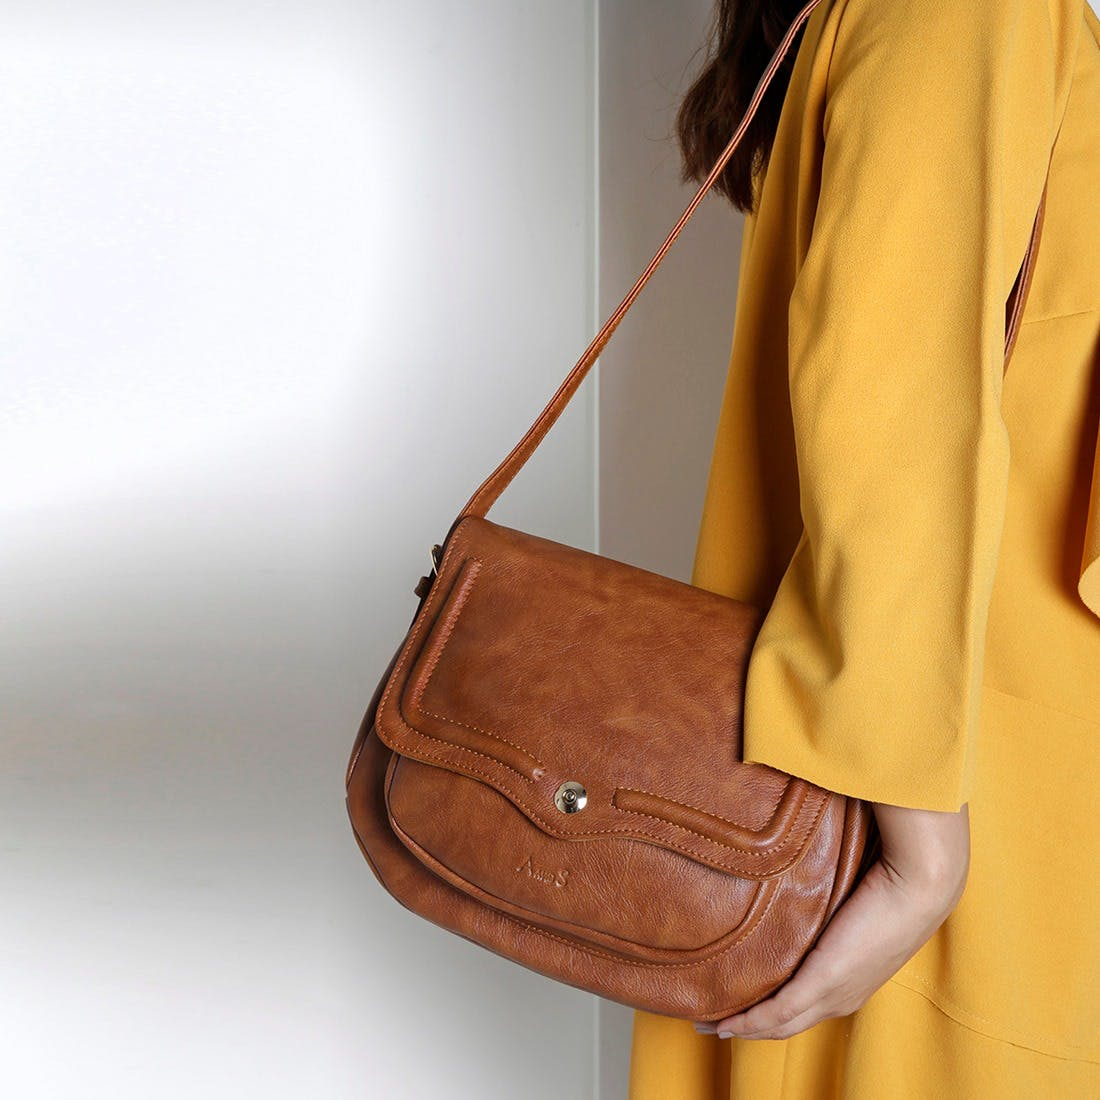 Bag,Handbag,Tan,Shoulder,Brown,Leather,Hobo bag,Yellow,Messenger bag,Joint